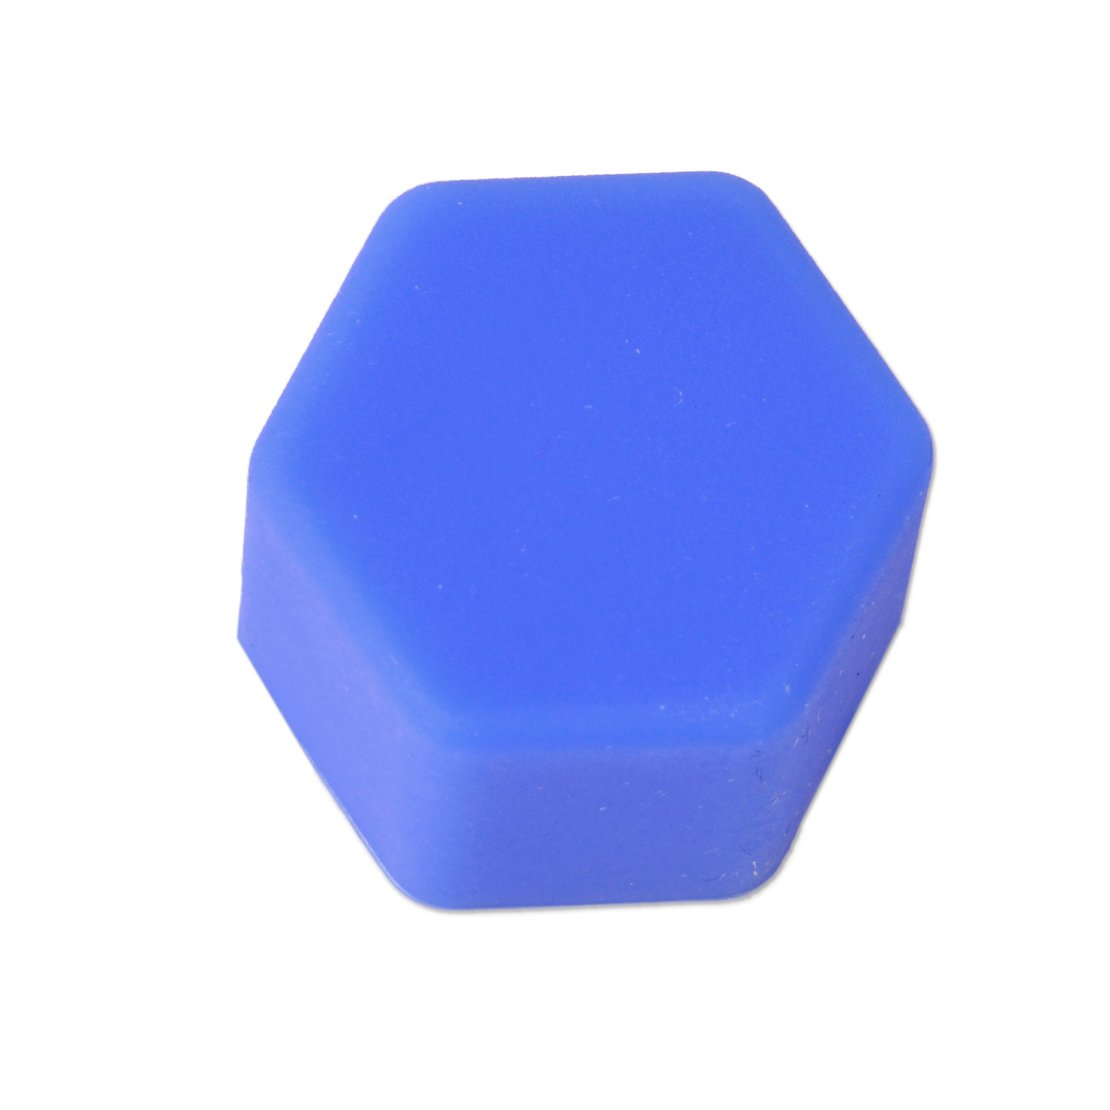 20pcs Universal 17mm Silicone Car Wheel Lug Nut Bolt Cover Protective Tyre Valve Screw Cap Antirust Blue